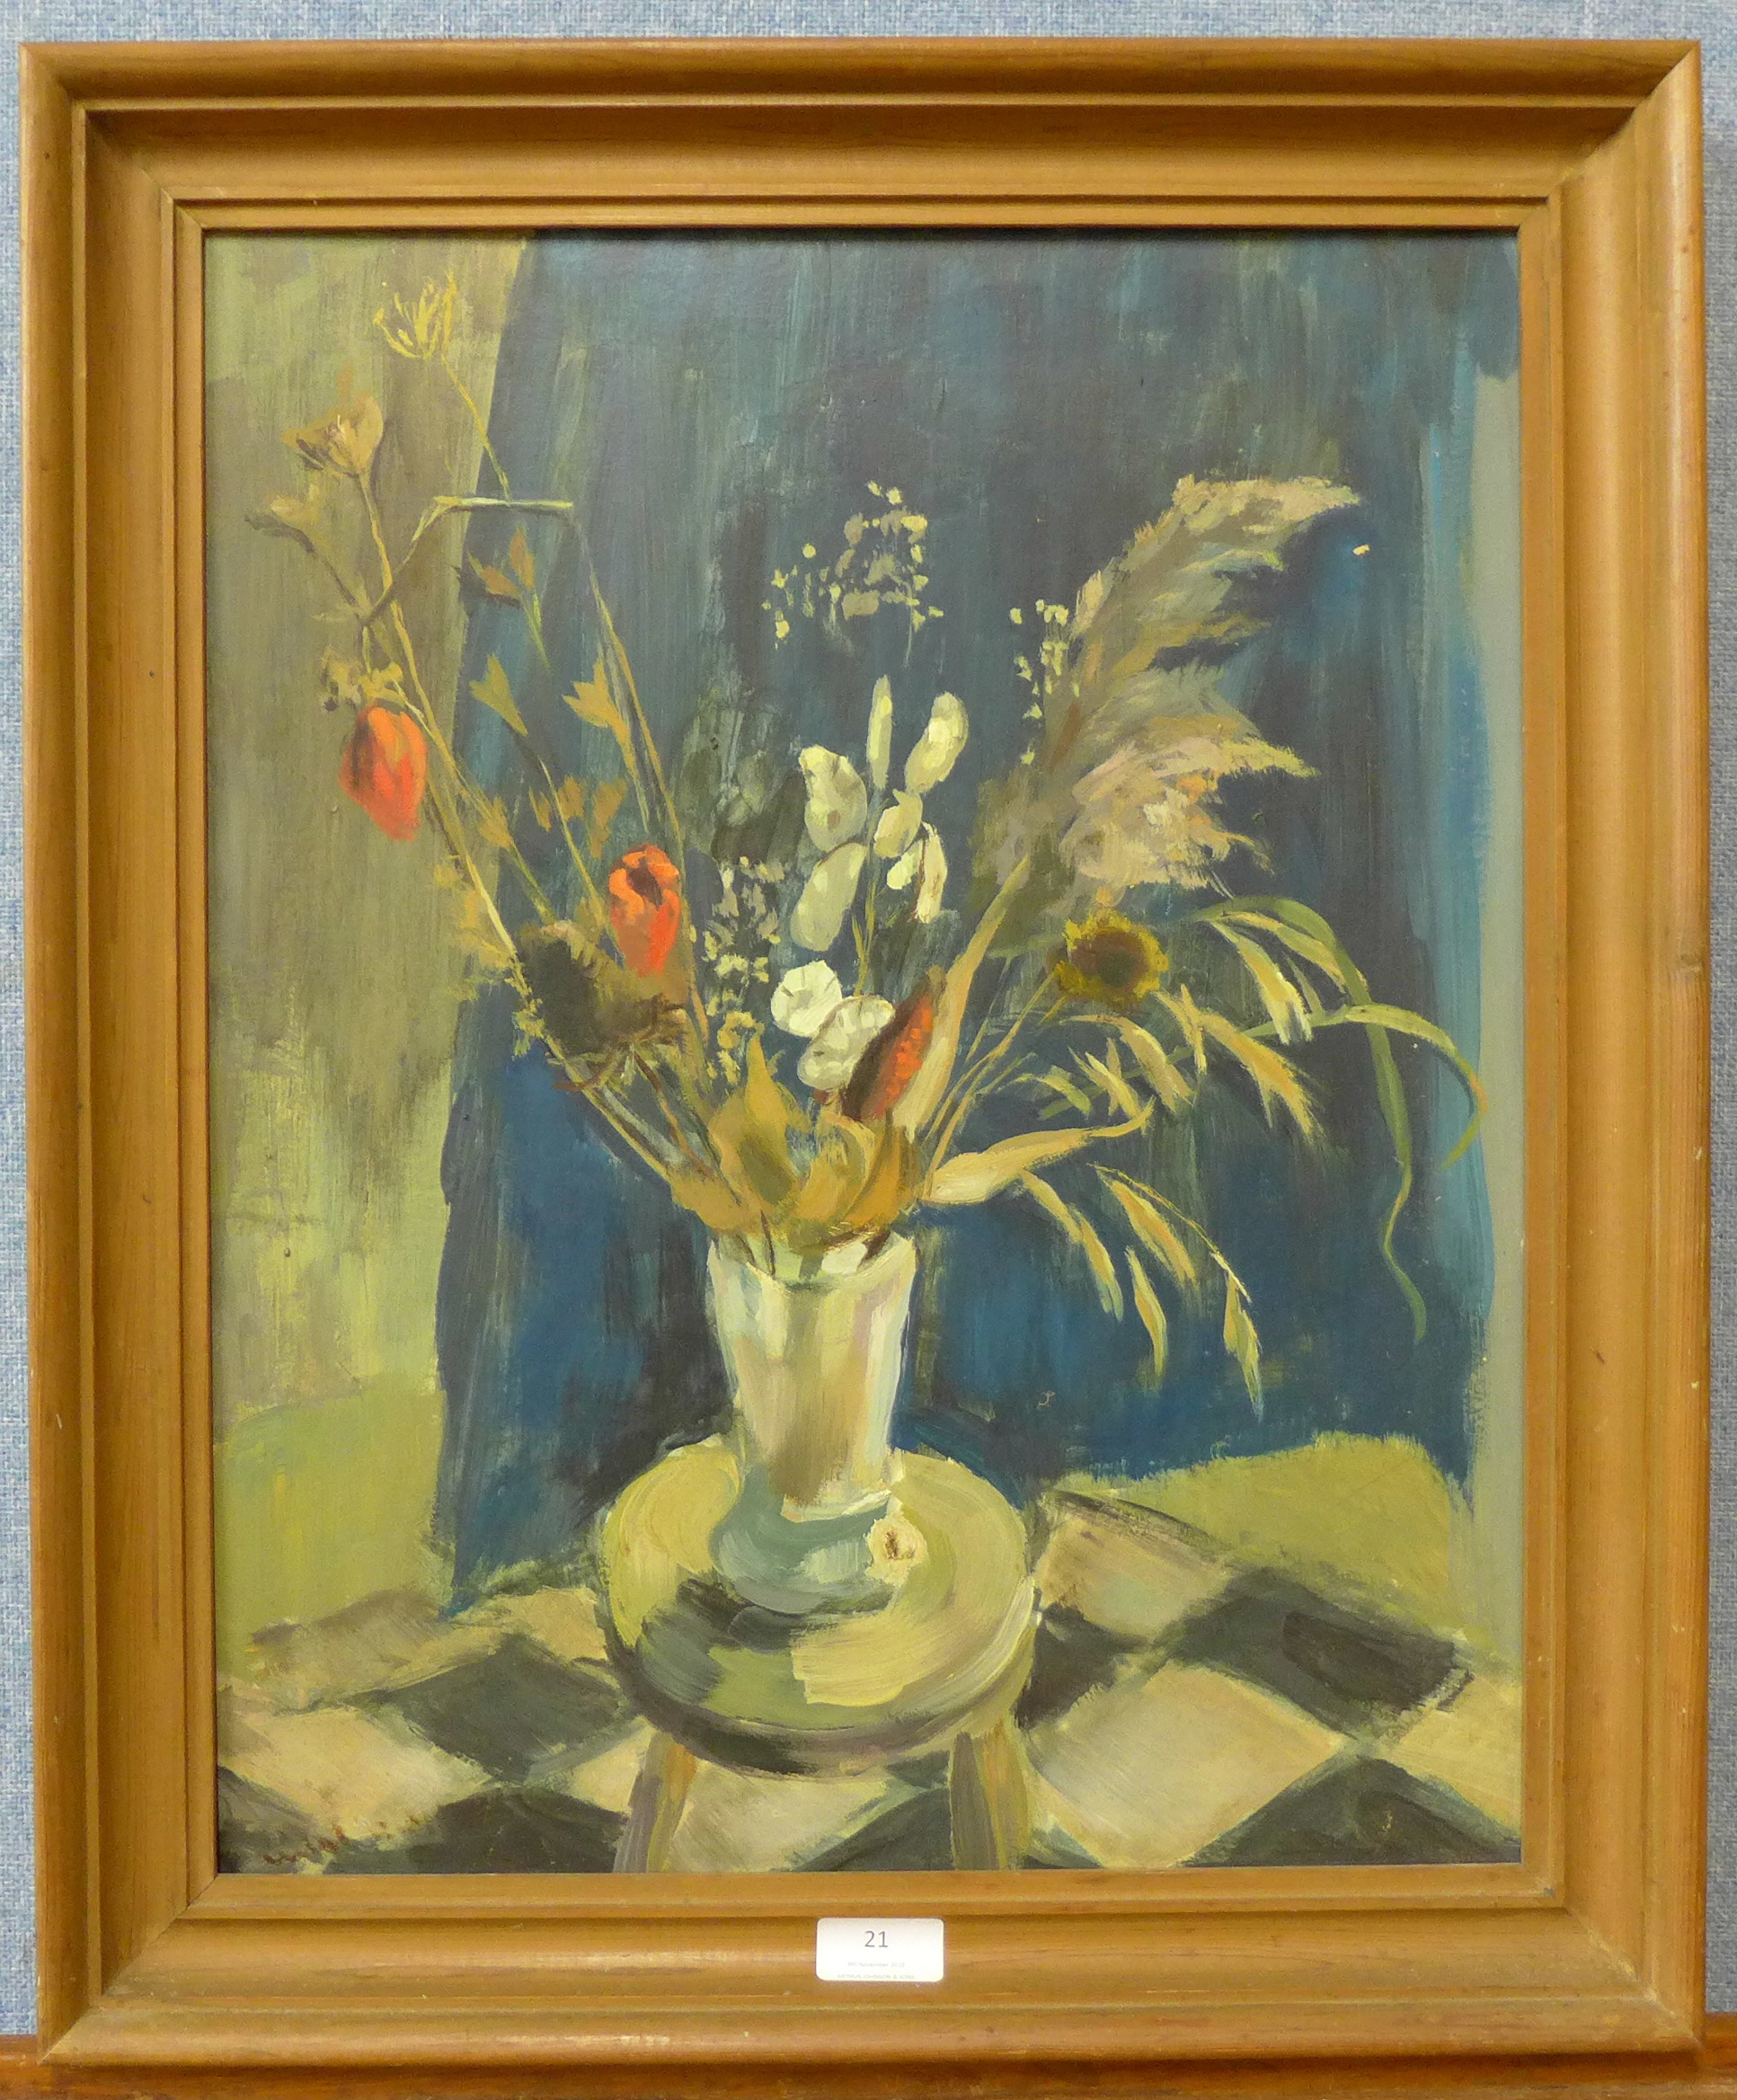 Lot 21 - British Modernist School, still life of flowers in a vase, oil on board, indistinctly signed,